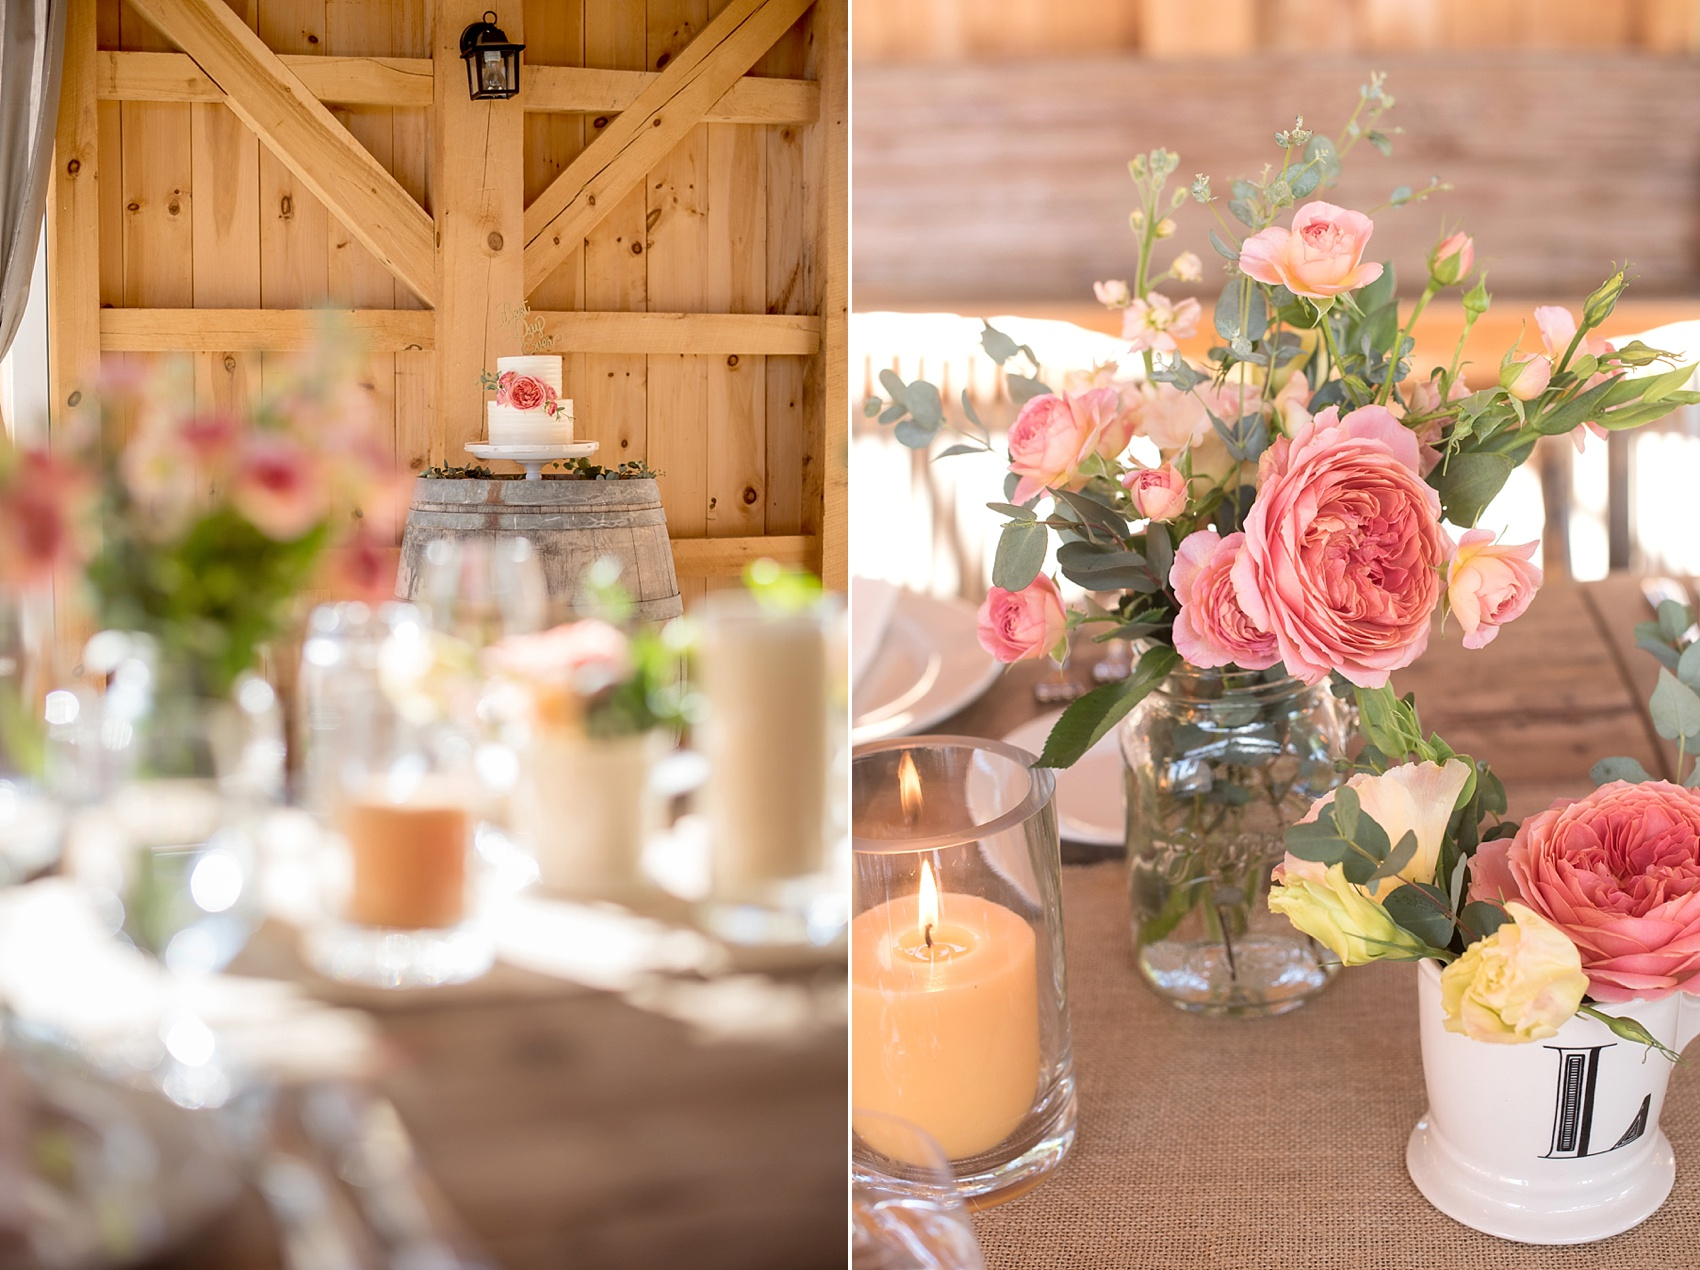 Spring vineyard elopement with pink flowers and barn reception. Photos by Mikkel Paige, destination wedding photographer. Held at HammerSky Vineyard, south of San Francisco.